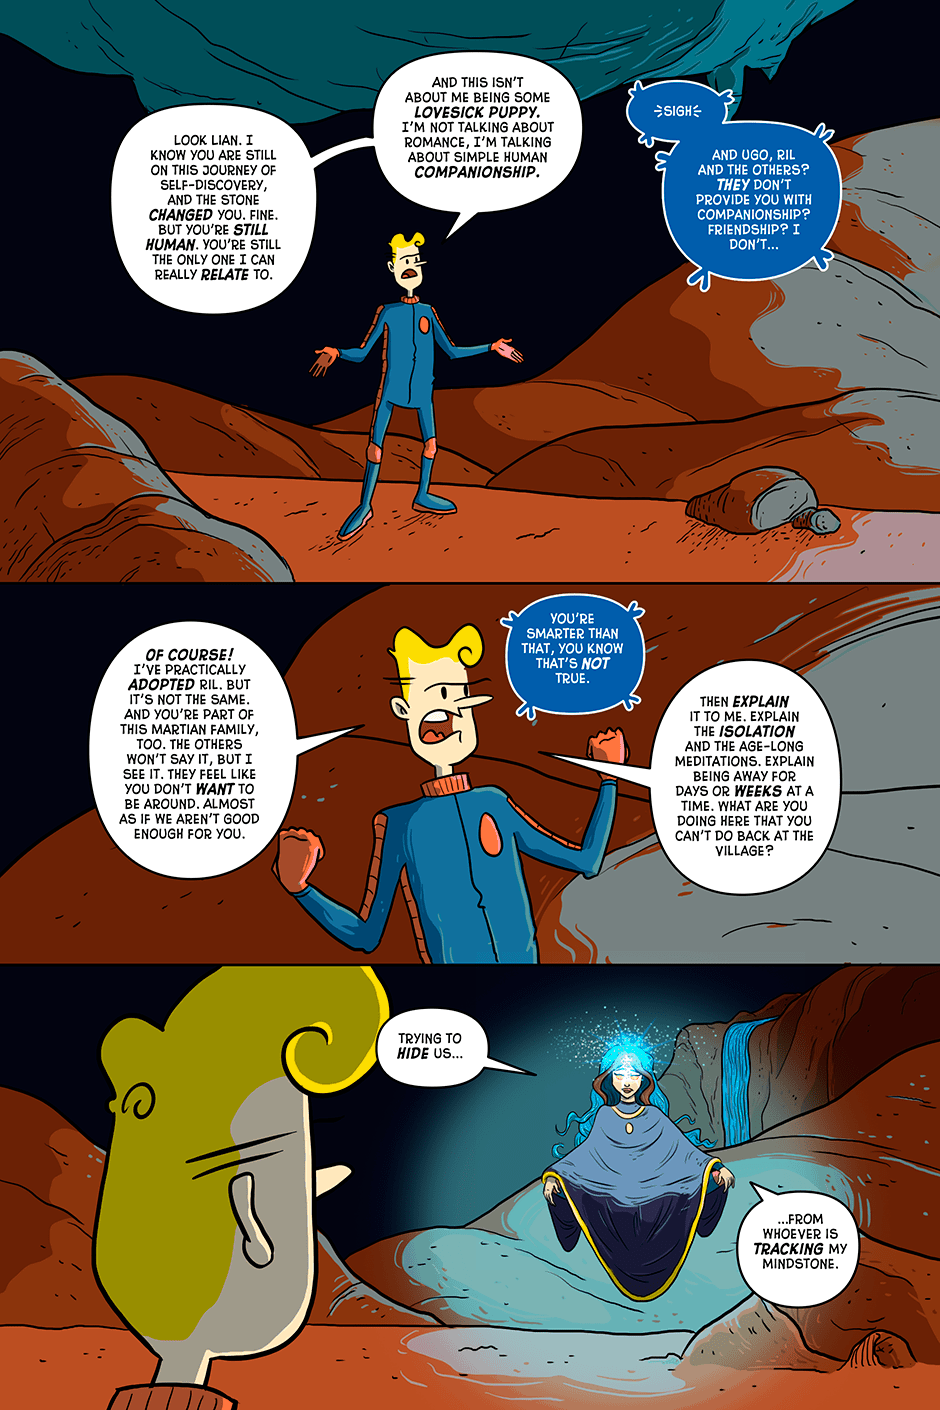 Page 9-10